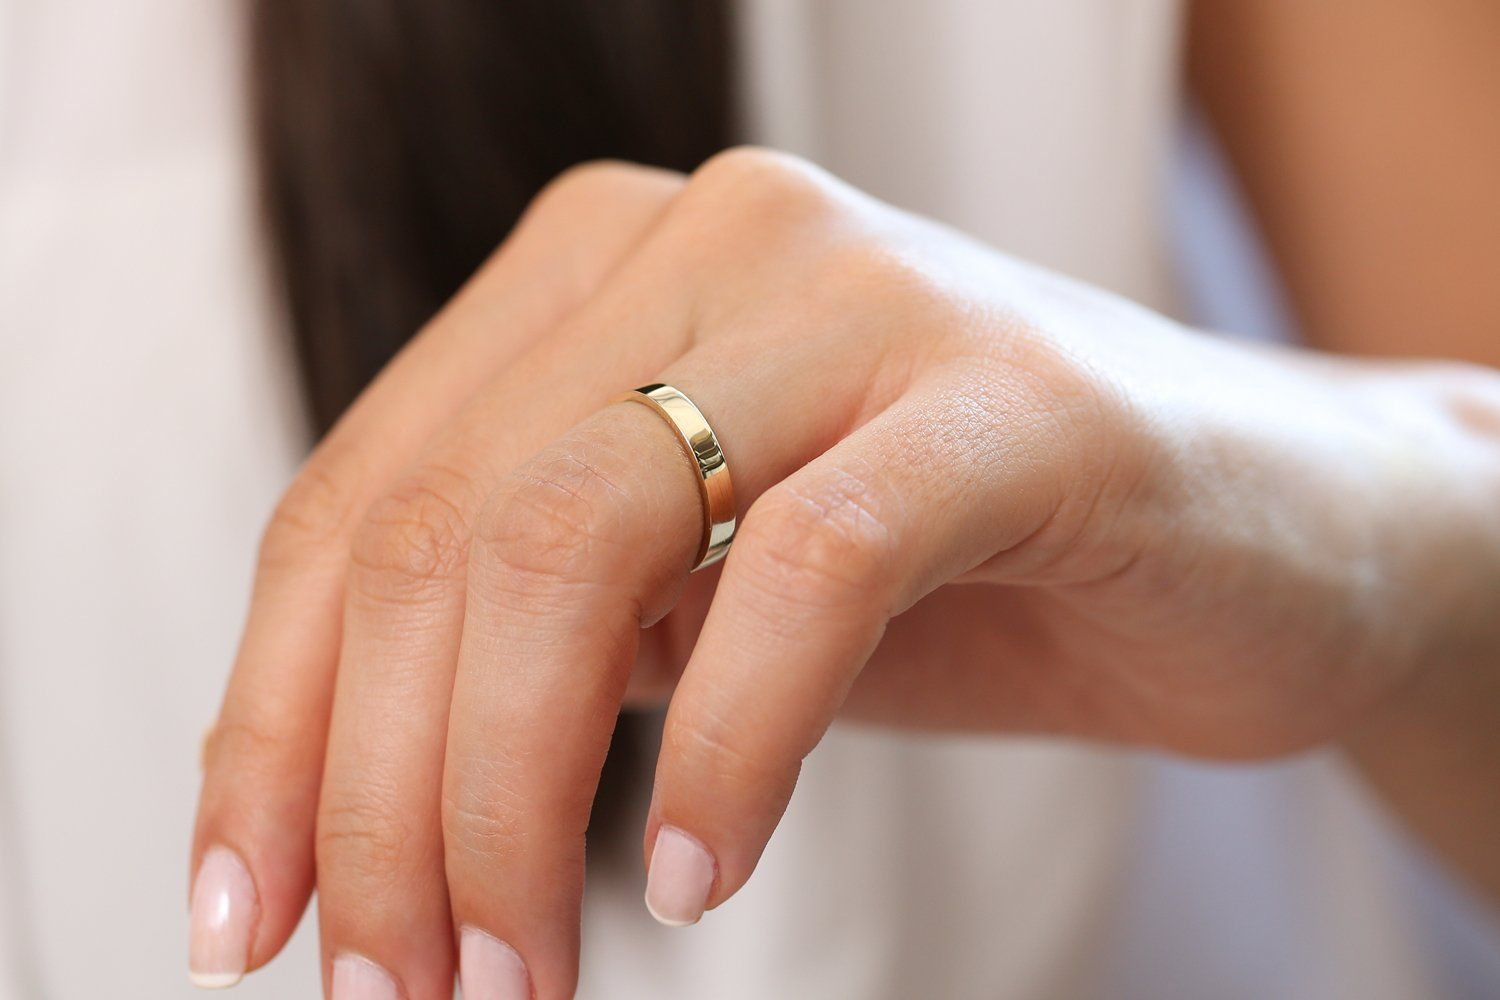 Item Details  Made to Order Gold KT: 14K Gold Color Option: Rose Gold, Yellow Gold, White Gold Measurement: Band 3.0mm Height: 1.3MM Size: 3 - 13 Ready to Ship in 7-10 Business Days  Description  This classic beautiful gold ring will look effortlessly chic paired with your engagement ring or even alone. The solid gold band is 3mm in width for a minimalist look that can be worn with anything. Handcrafted and made to order, this gold wedding band was made to last a lifetime.